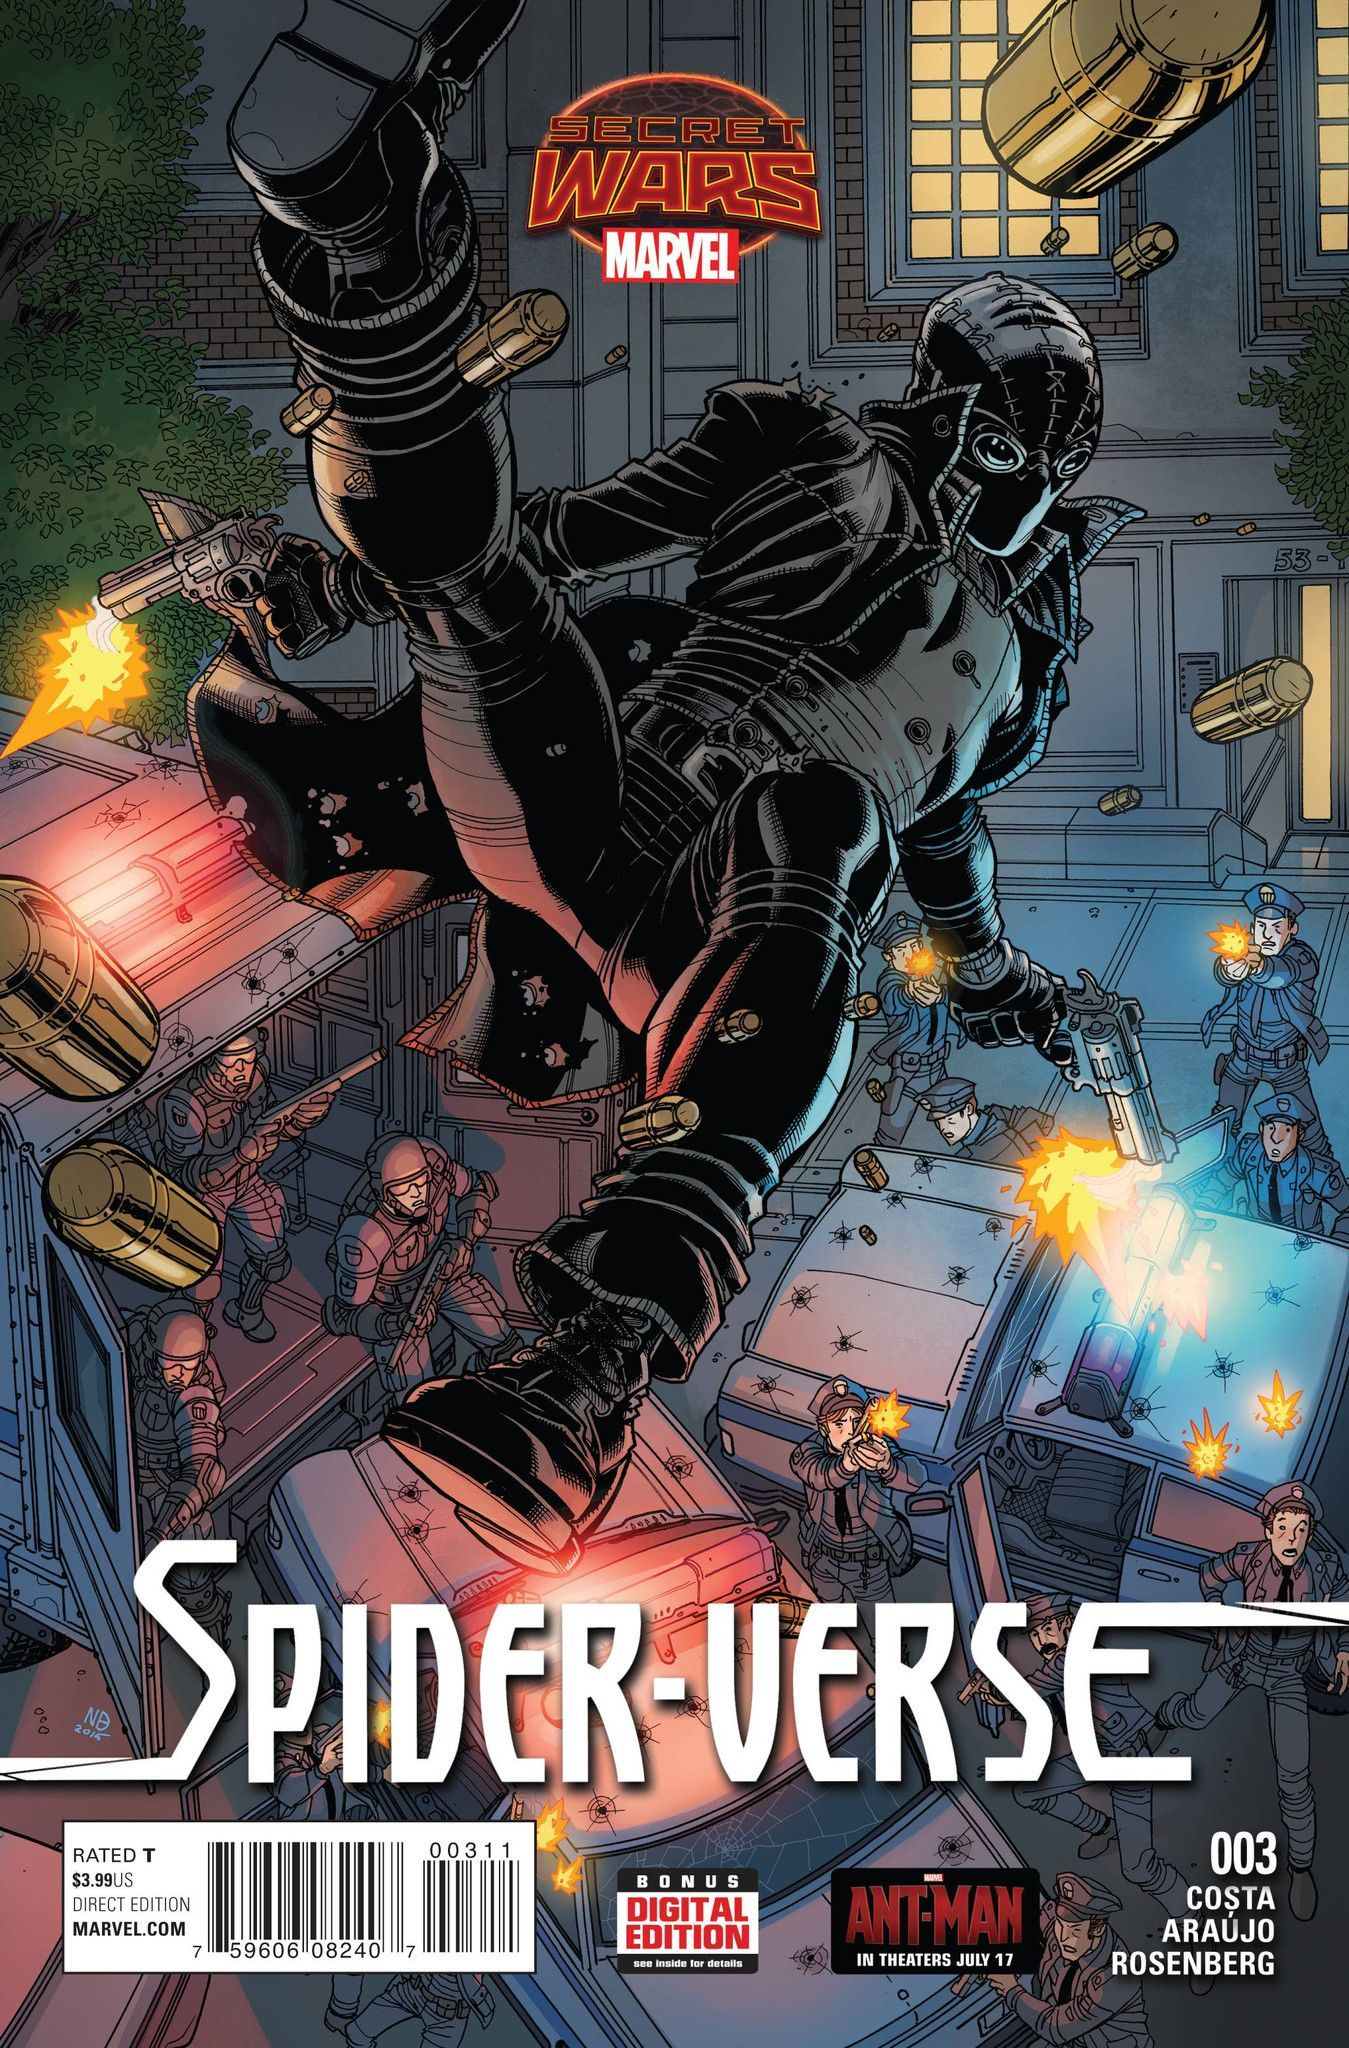 SPIDER-MAN NOIR ON THE RUN! The Web Warriors are outmatched in a world where none of them belong. Does Spider-Ham hold the secret to a possible victory?